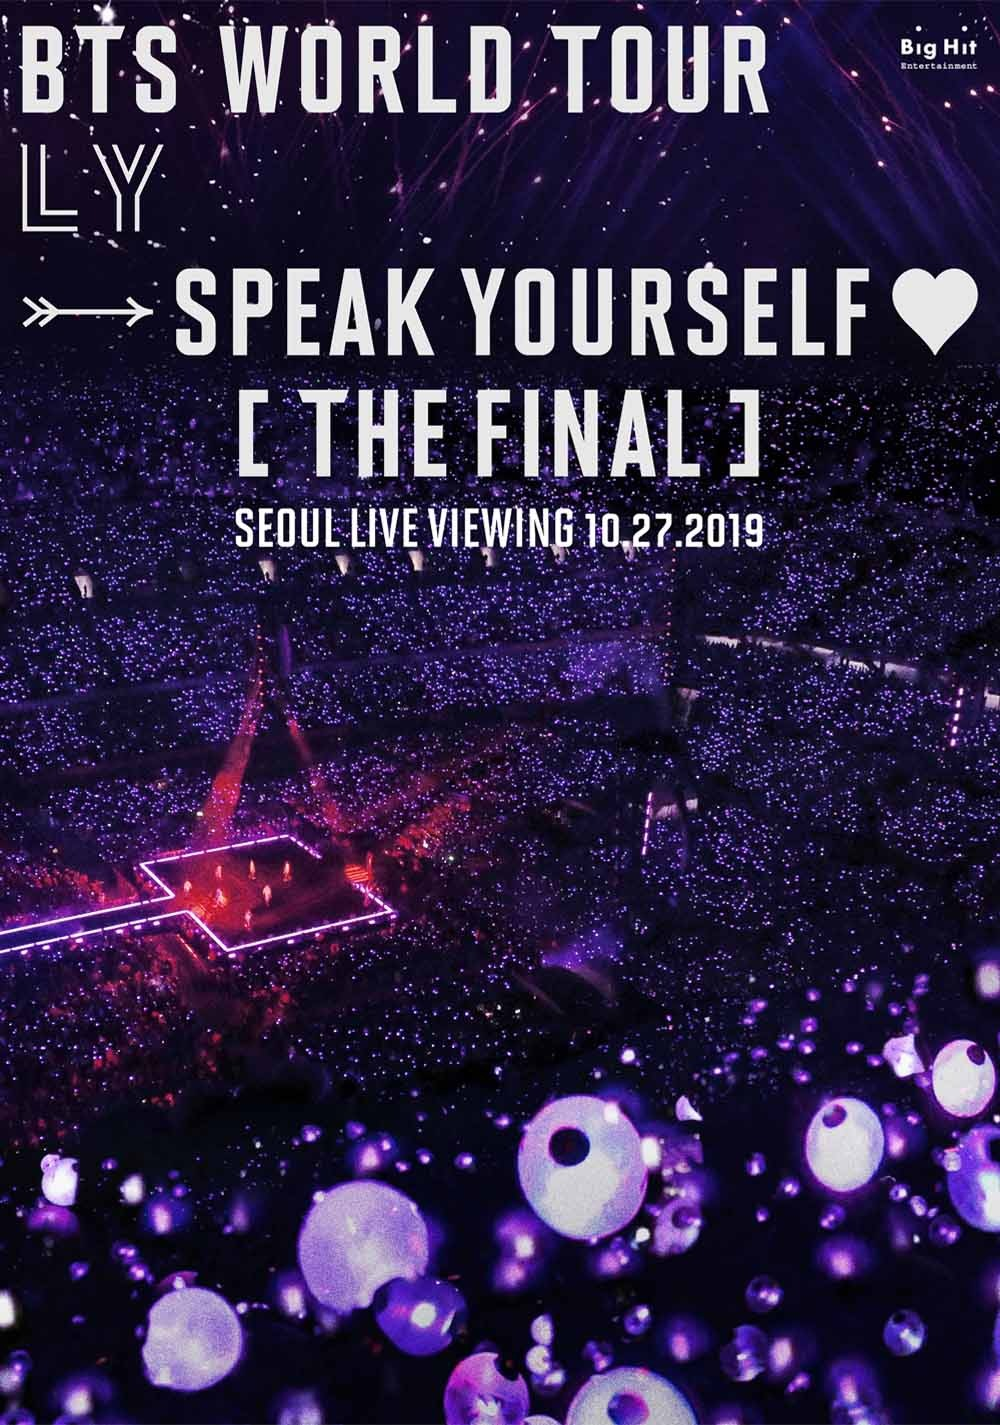 Bts World Tour Love Yourself - Bts World Tour Love Yourself Speak Yourself , HD Wallpaper & Backgrounds